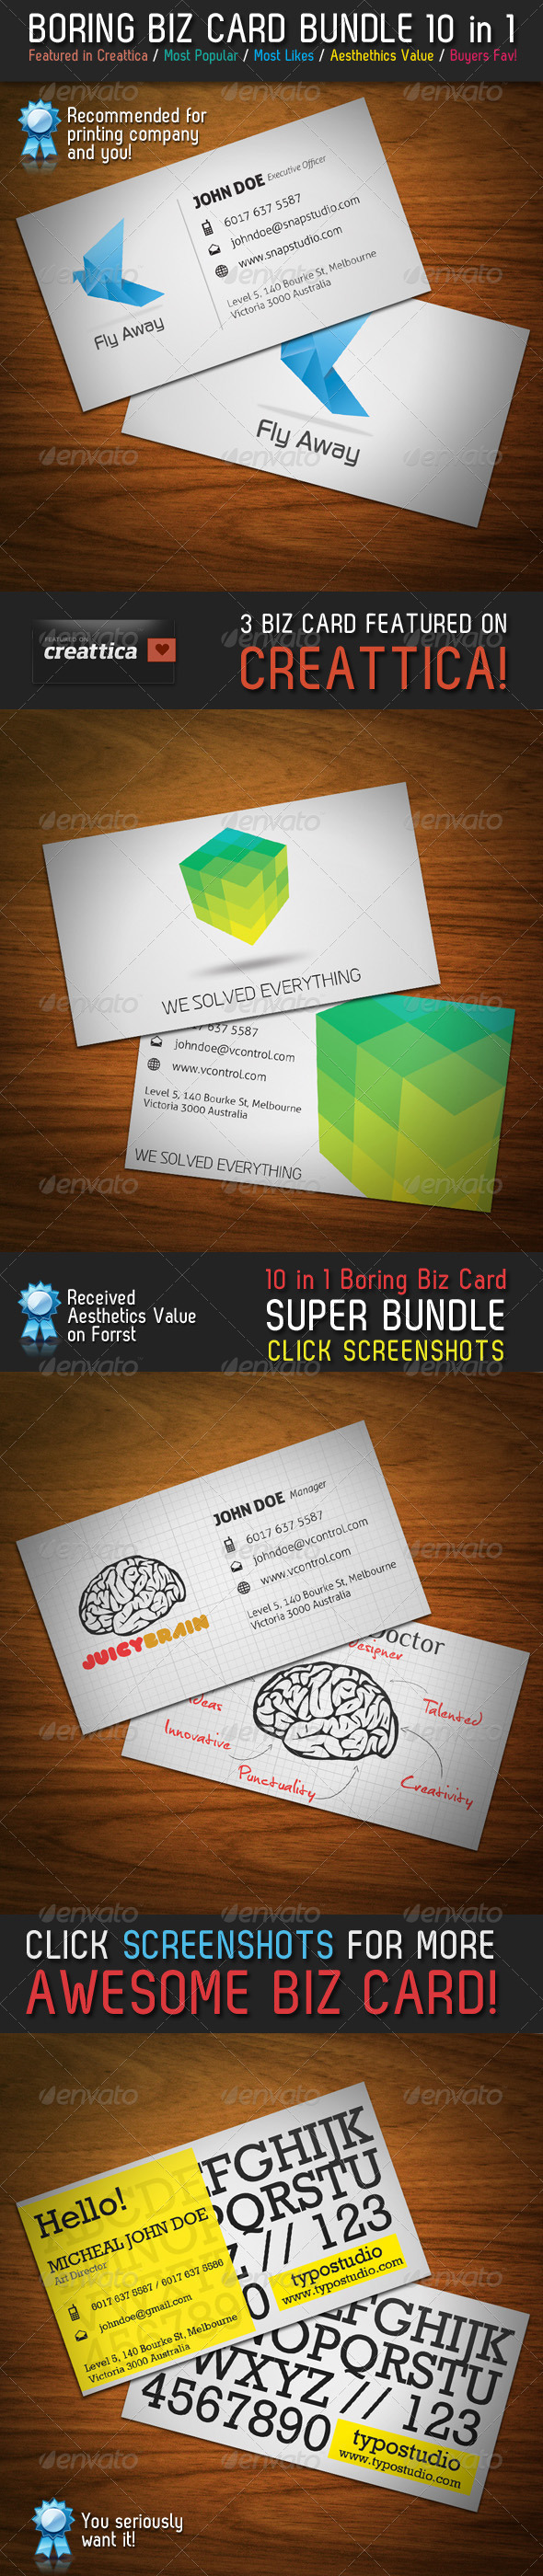 Boring Business Card Bundle 10 in 1 - Corporate Business Cards